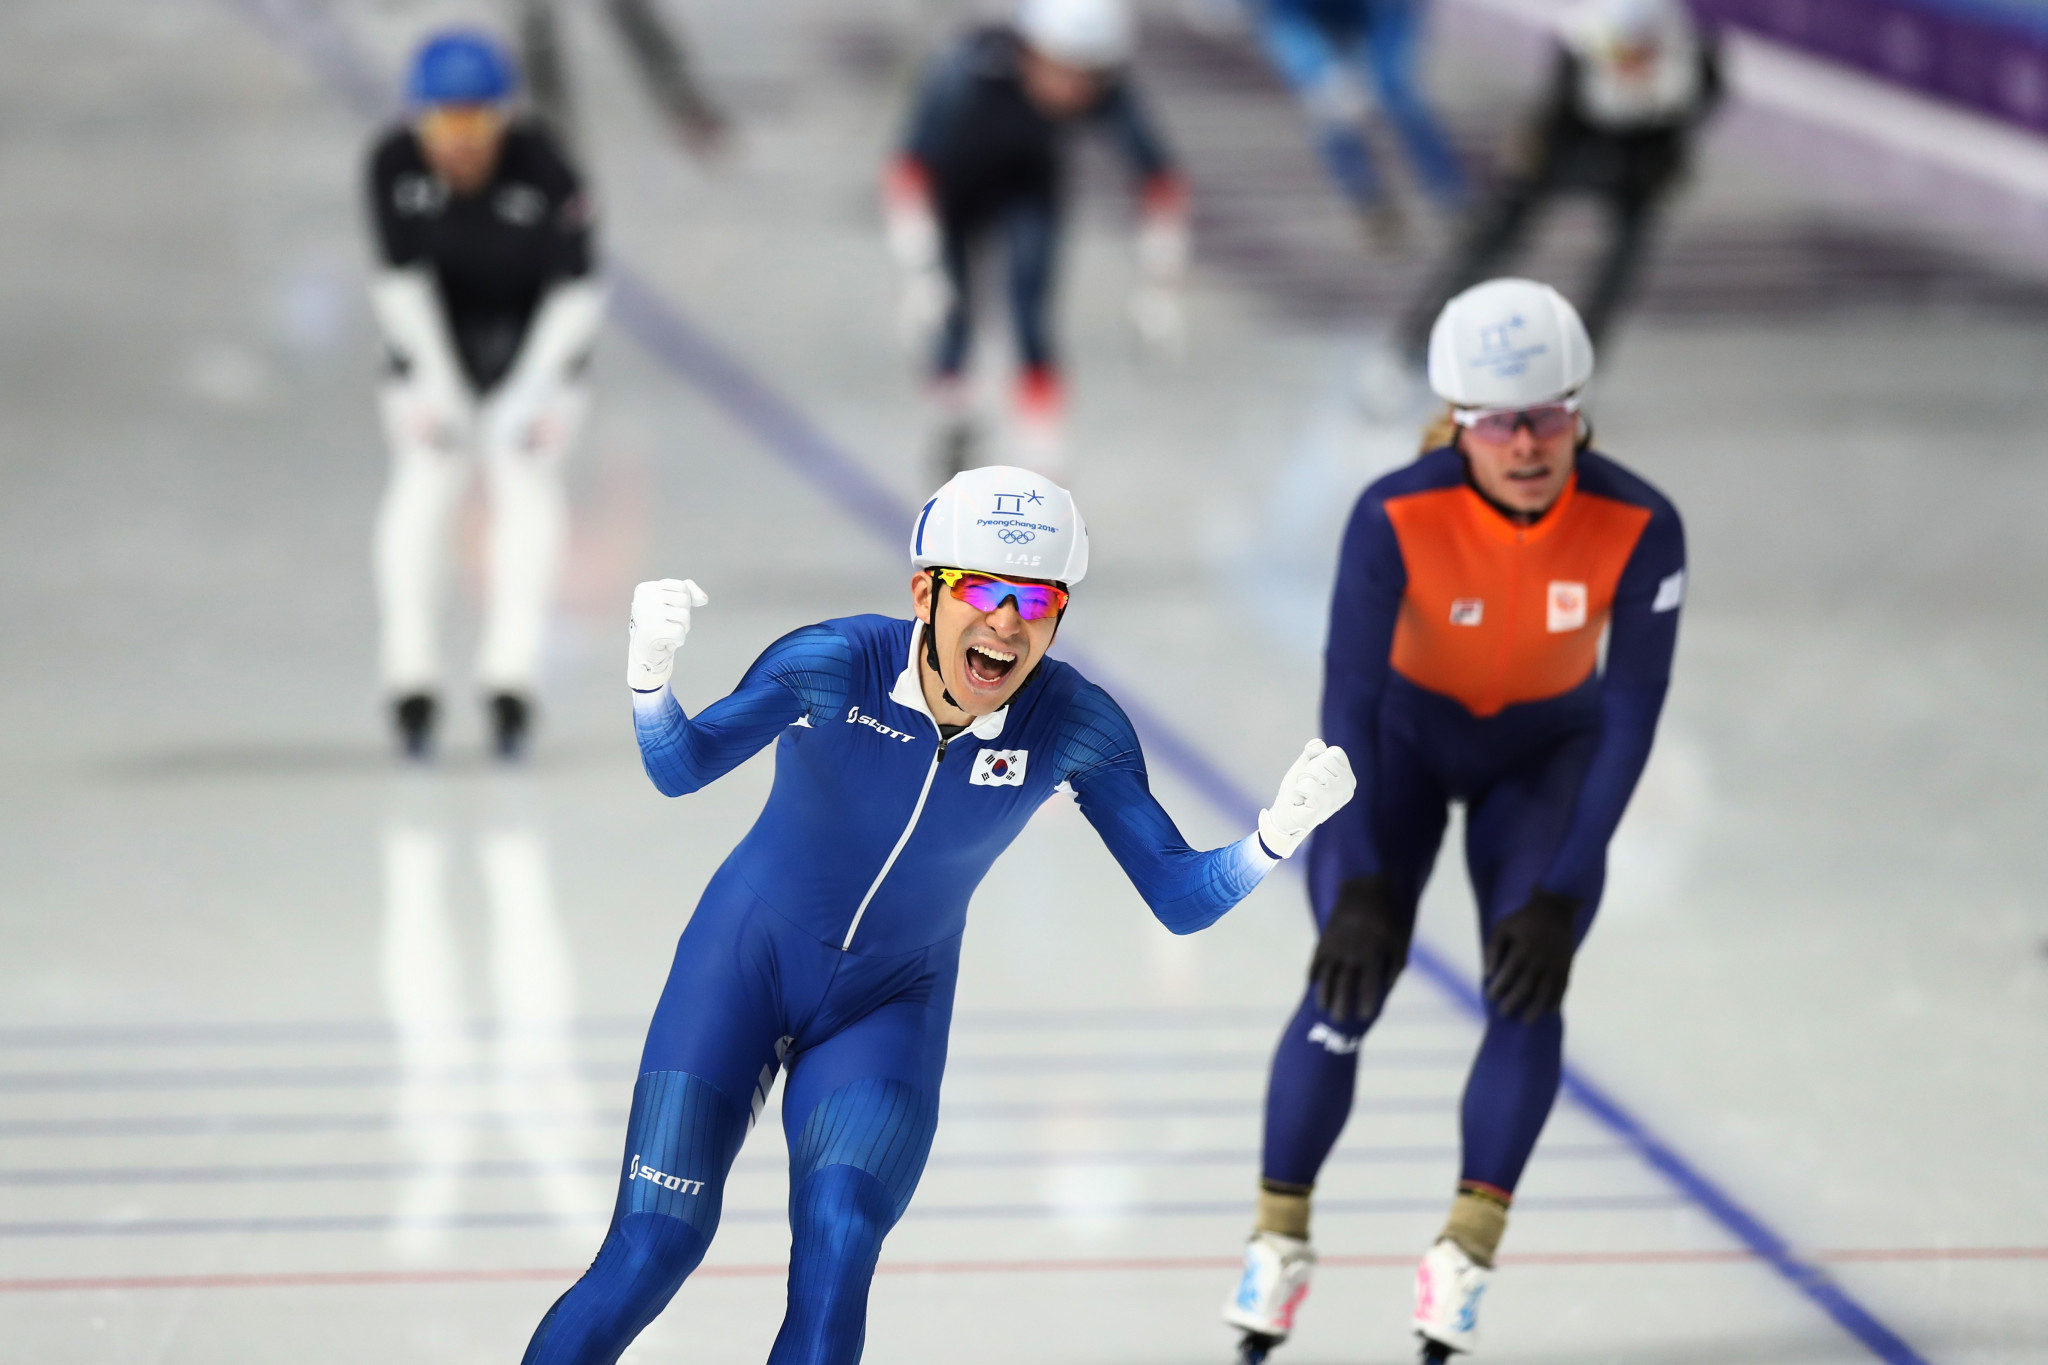 Speed skater secures record-breaking medal for hosts as mass start event makes Olympic debut